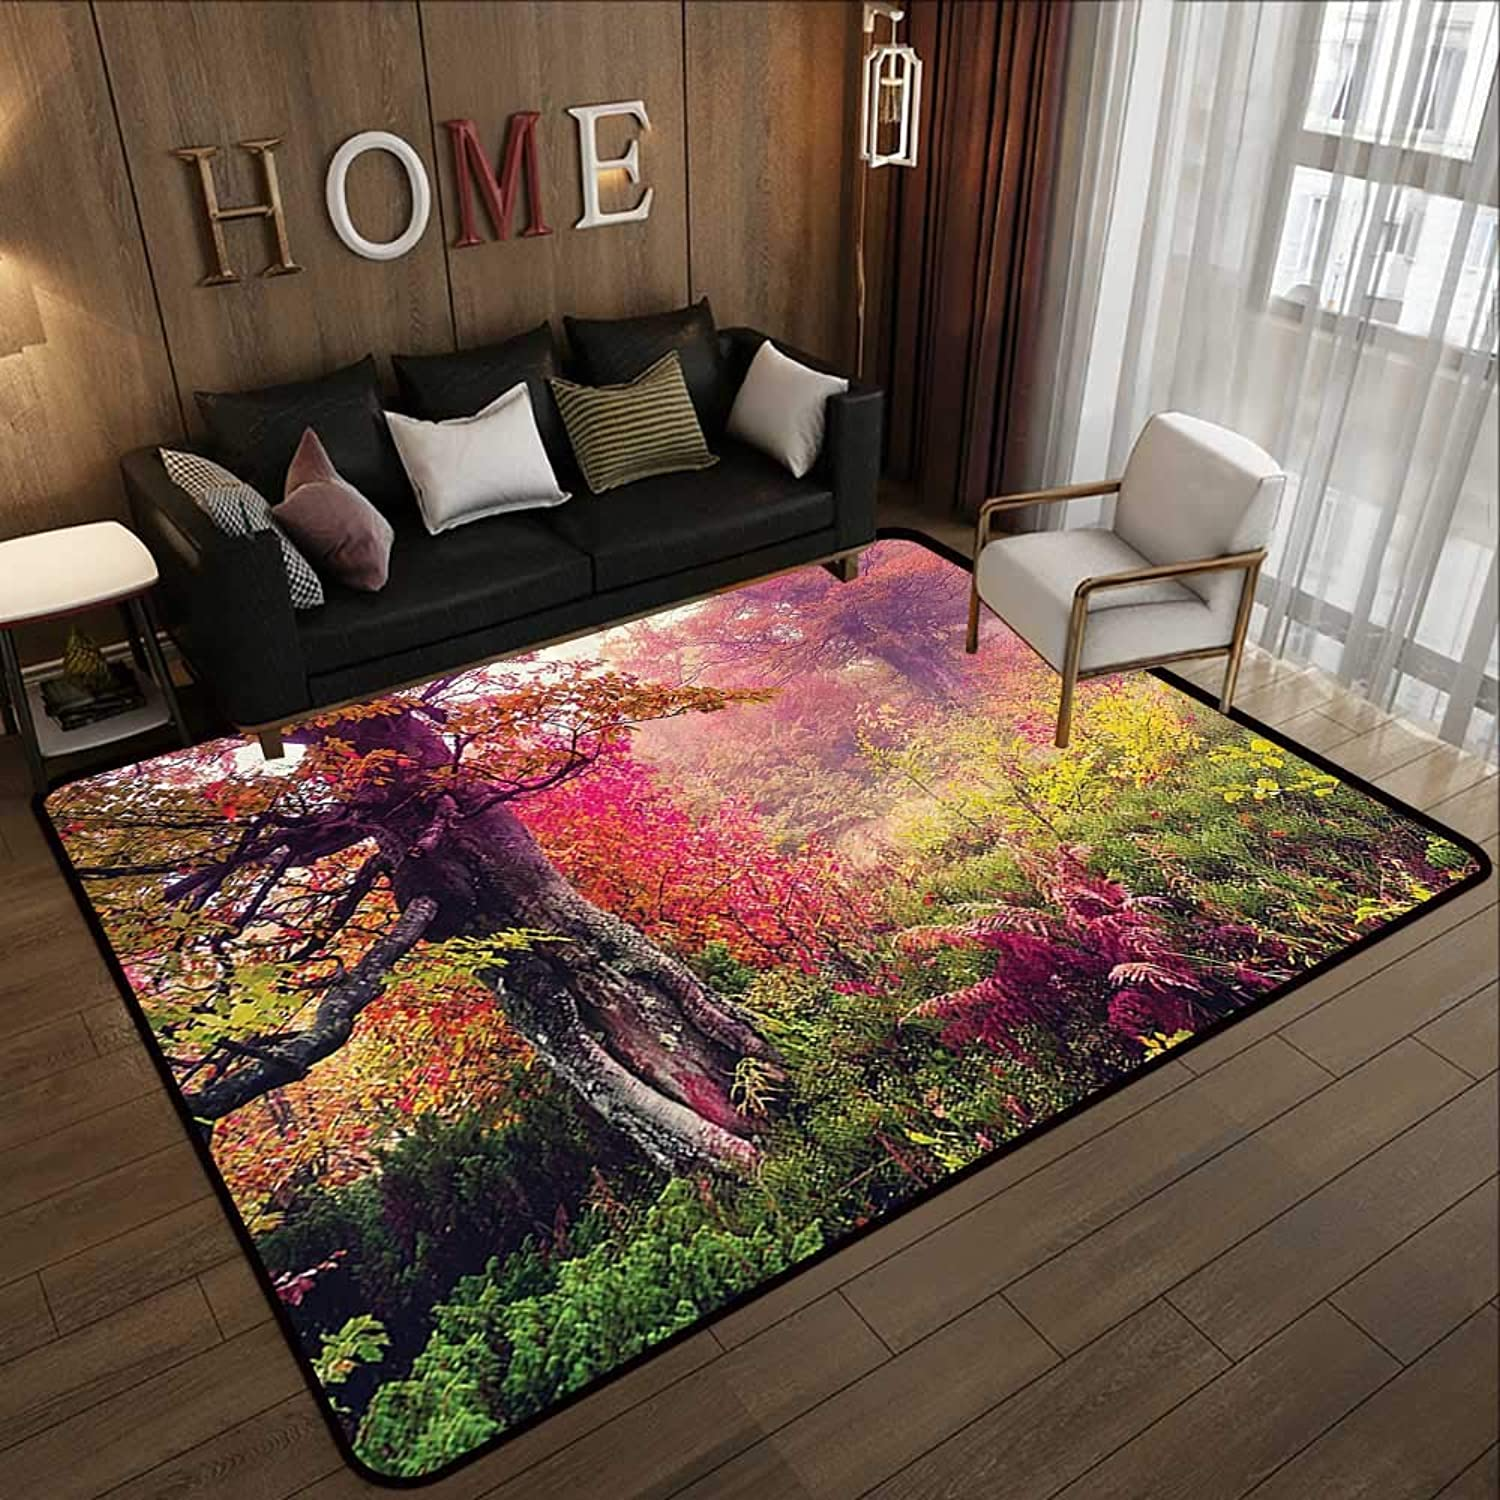 Modern Area Rug with Non-Skid,Farm House Decor,Fairy Majestic Landscape with Autumn Trees in Forest Natural Garden in Ukraine,Multi 47 x 59  Indoor Super Absorbs Doormat